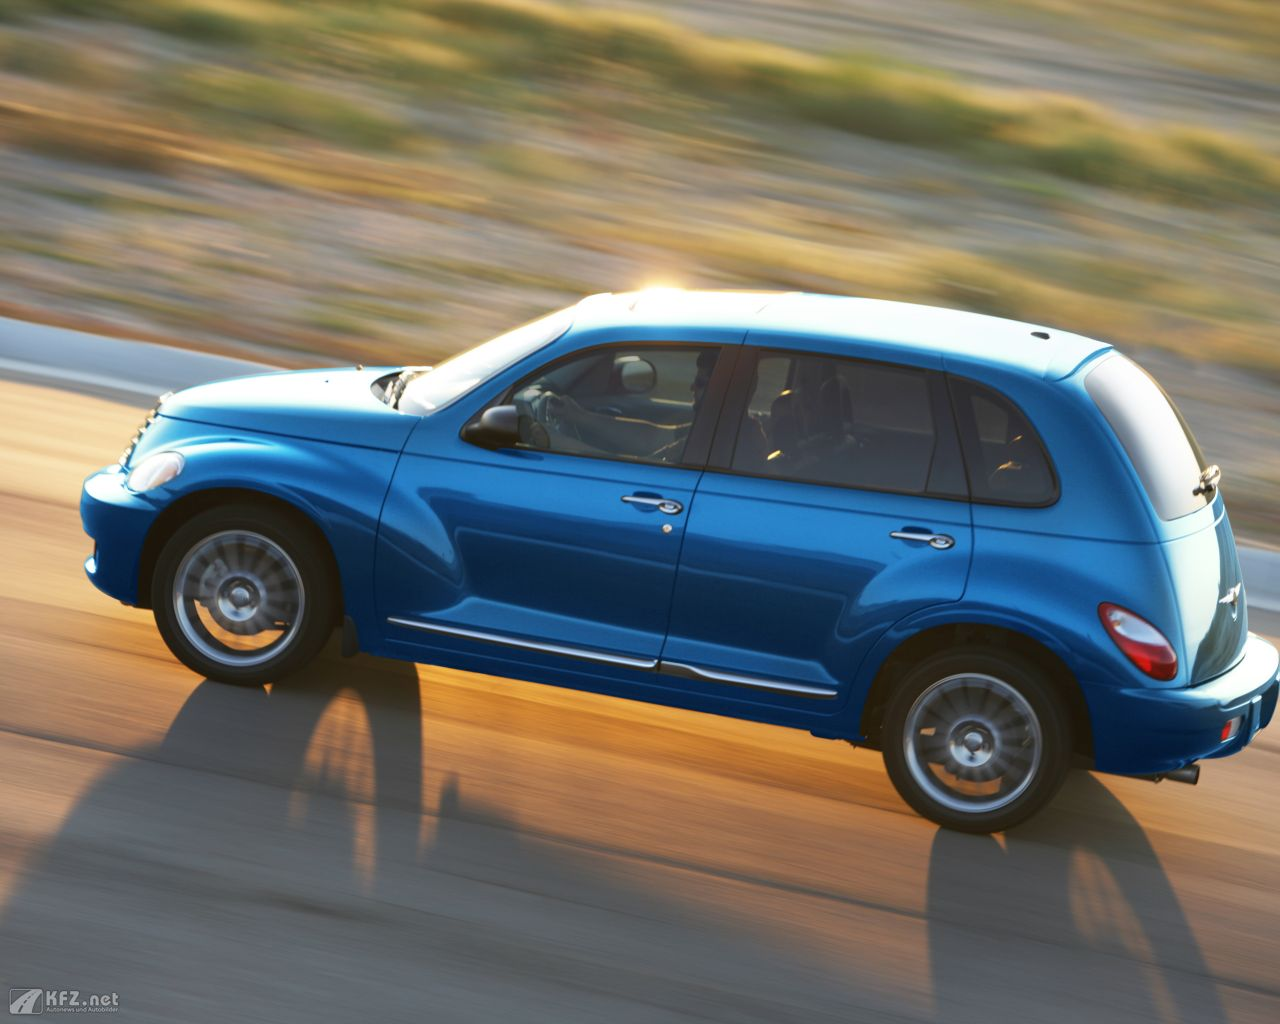 chrysler-pt-cruiser-1280x1024-17